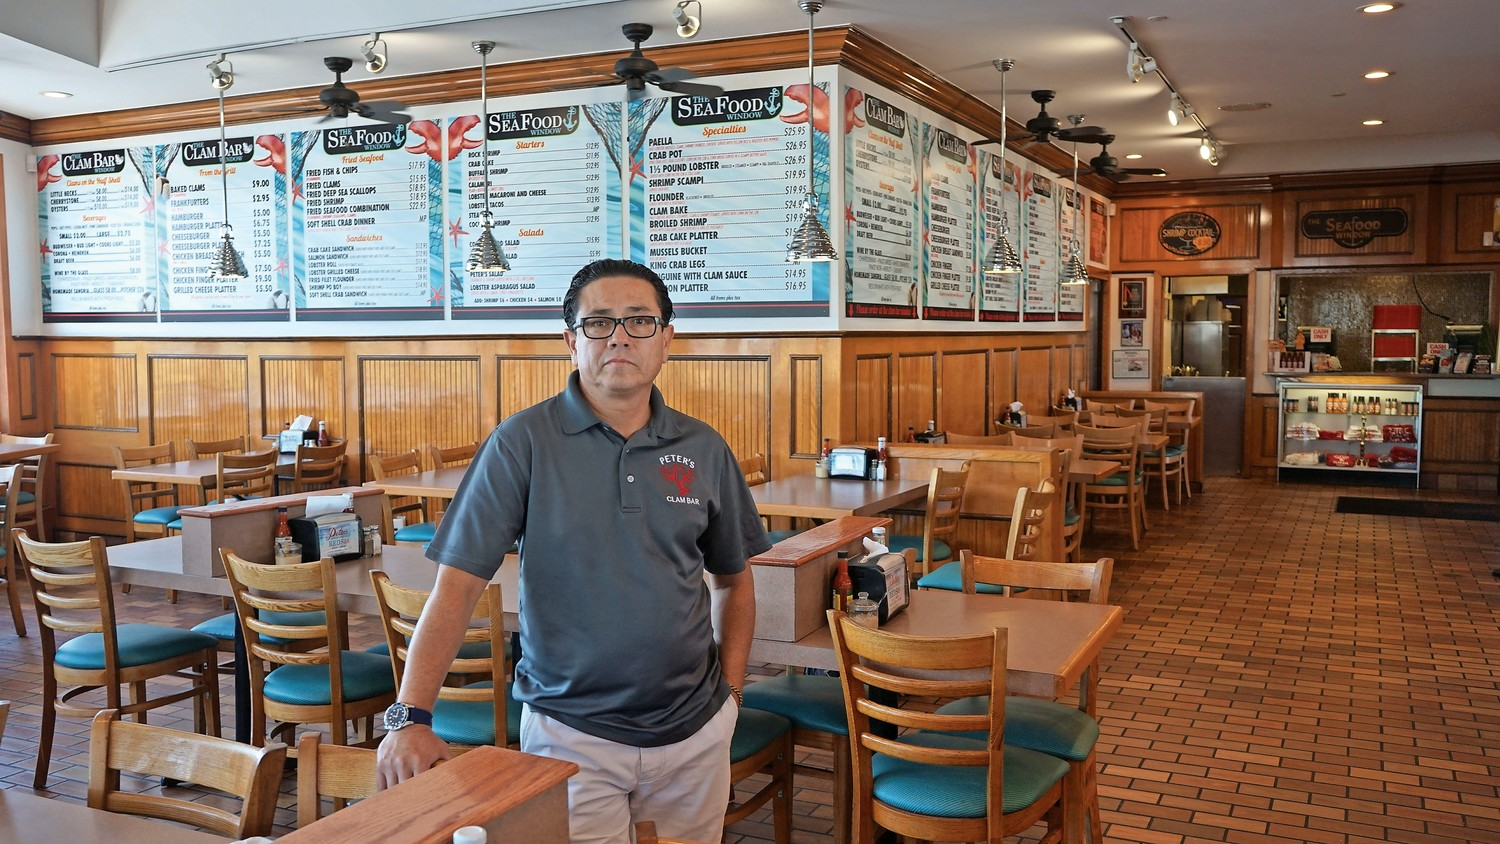 Peter's Clam Bar manager Pepe Poblador, left,  stood in the restaurant's empty dining hall on a warm day in September. Peter's owner Butch Yamali has criticized the county's handling of the bridge project, which he says has hurt business.